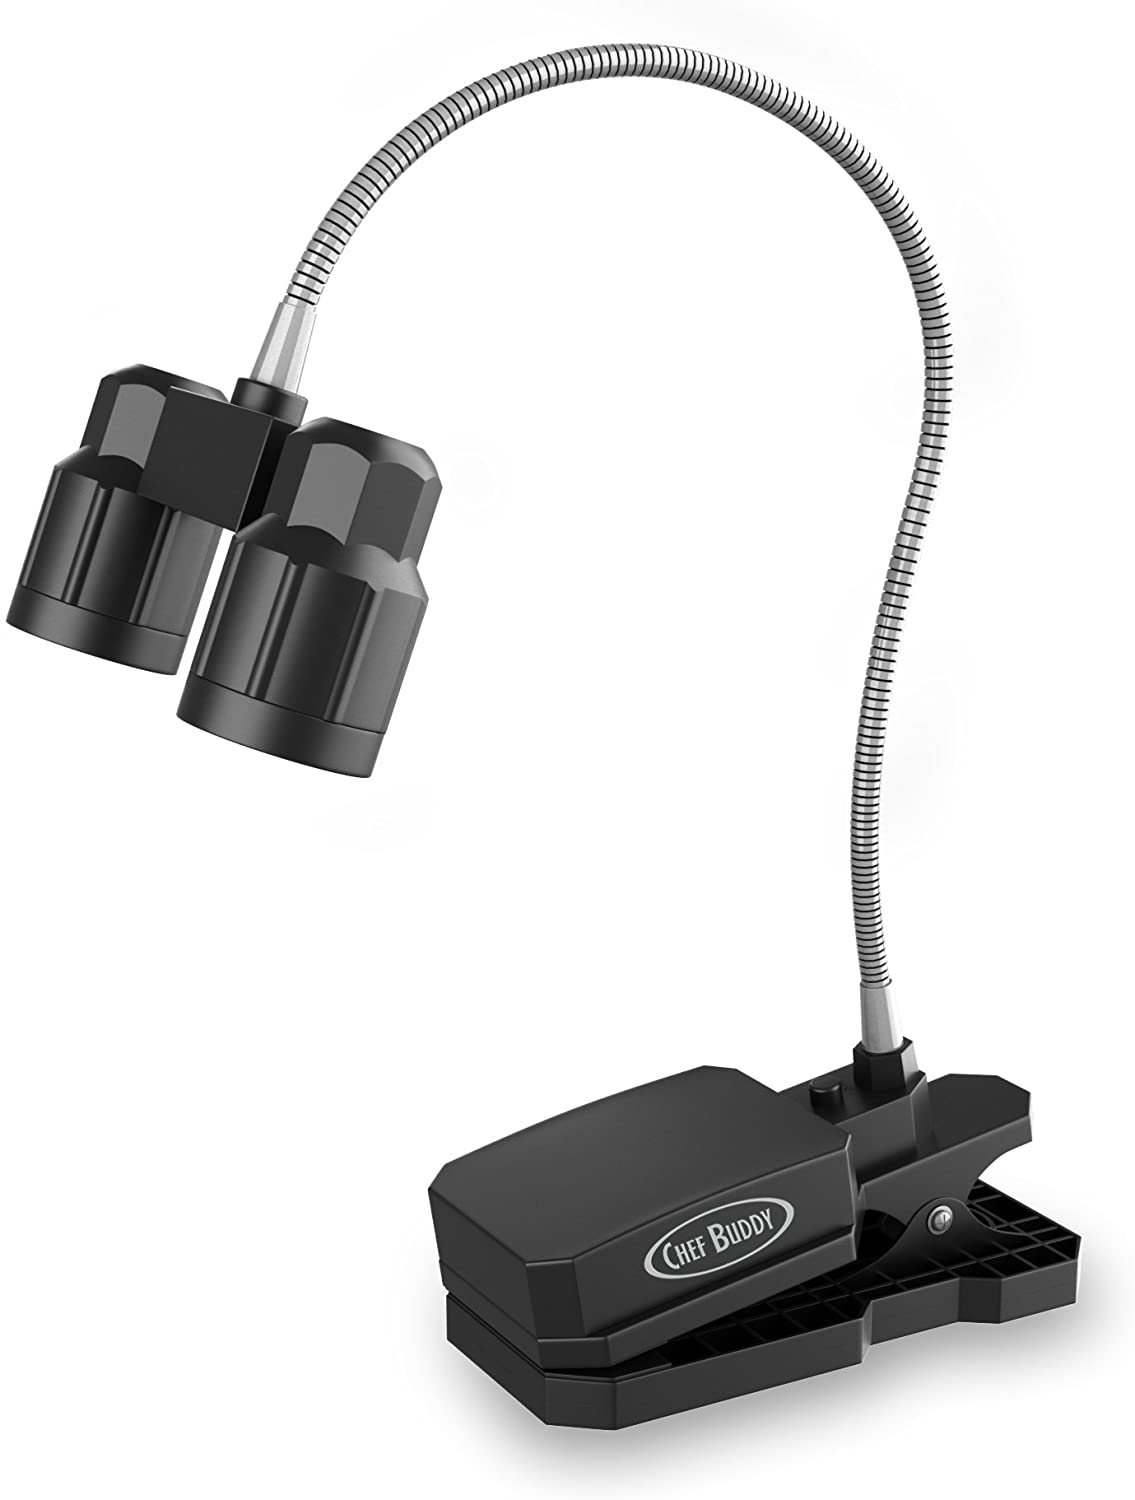 Chef Buddy LED Barbeque Grill Light